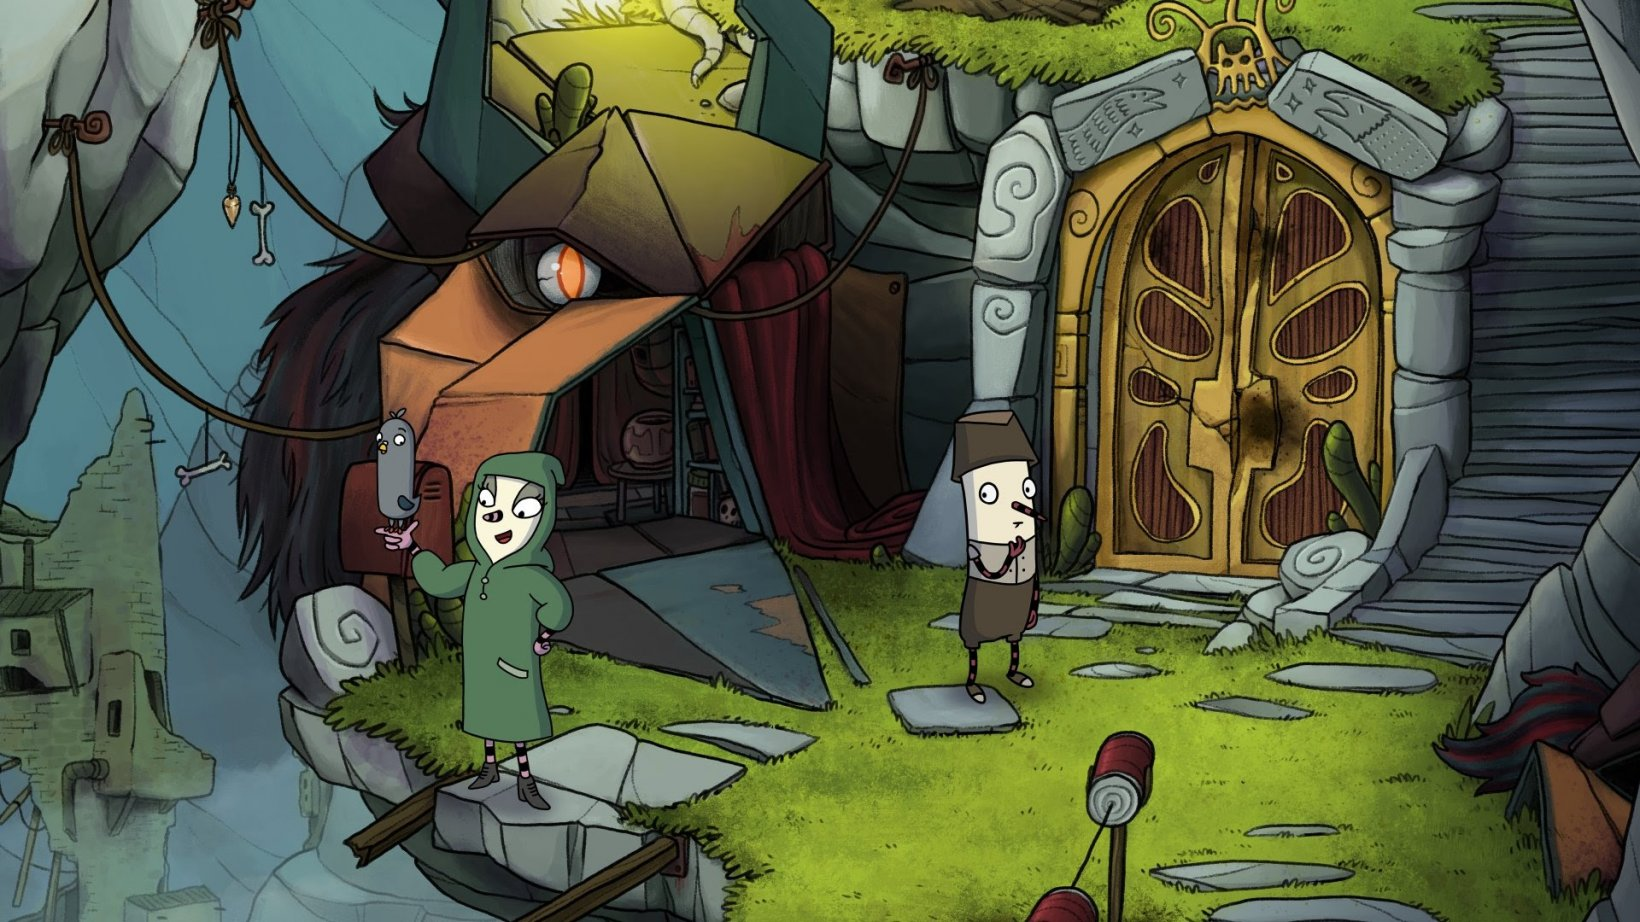 Embark on a new adventure in the 2D puzzler The Inner World - The Last Wind Monk, out now on iOS and Android